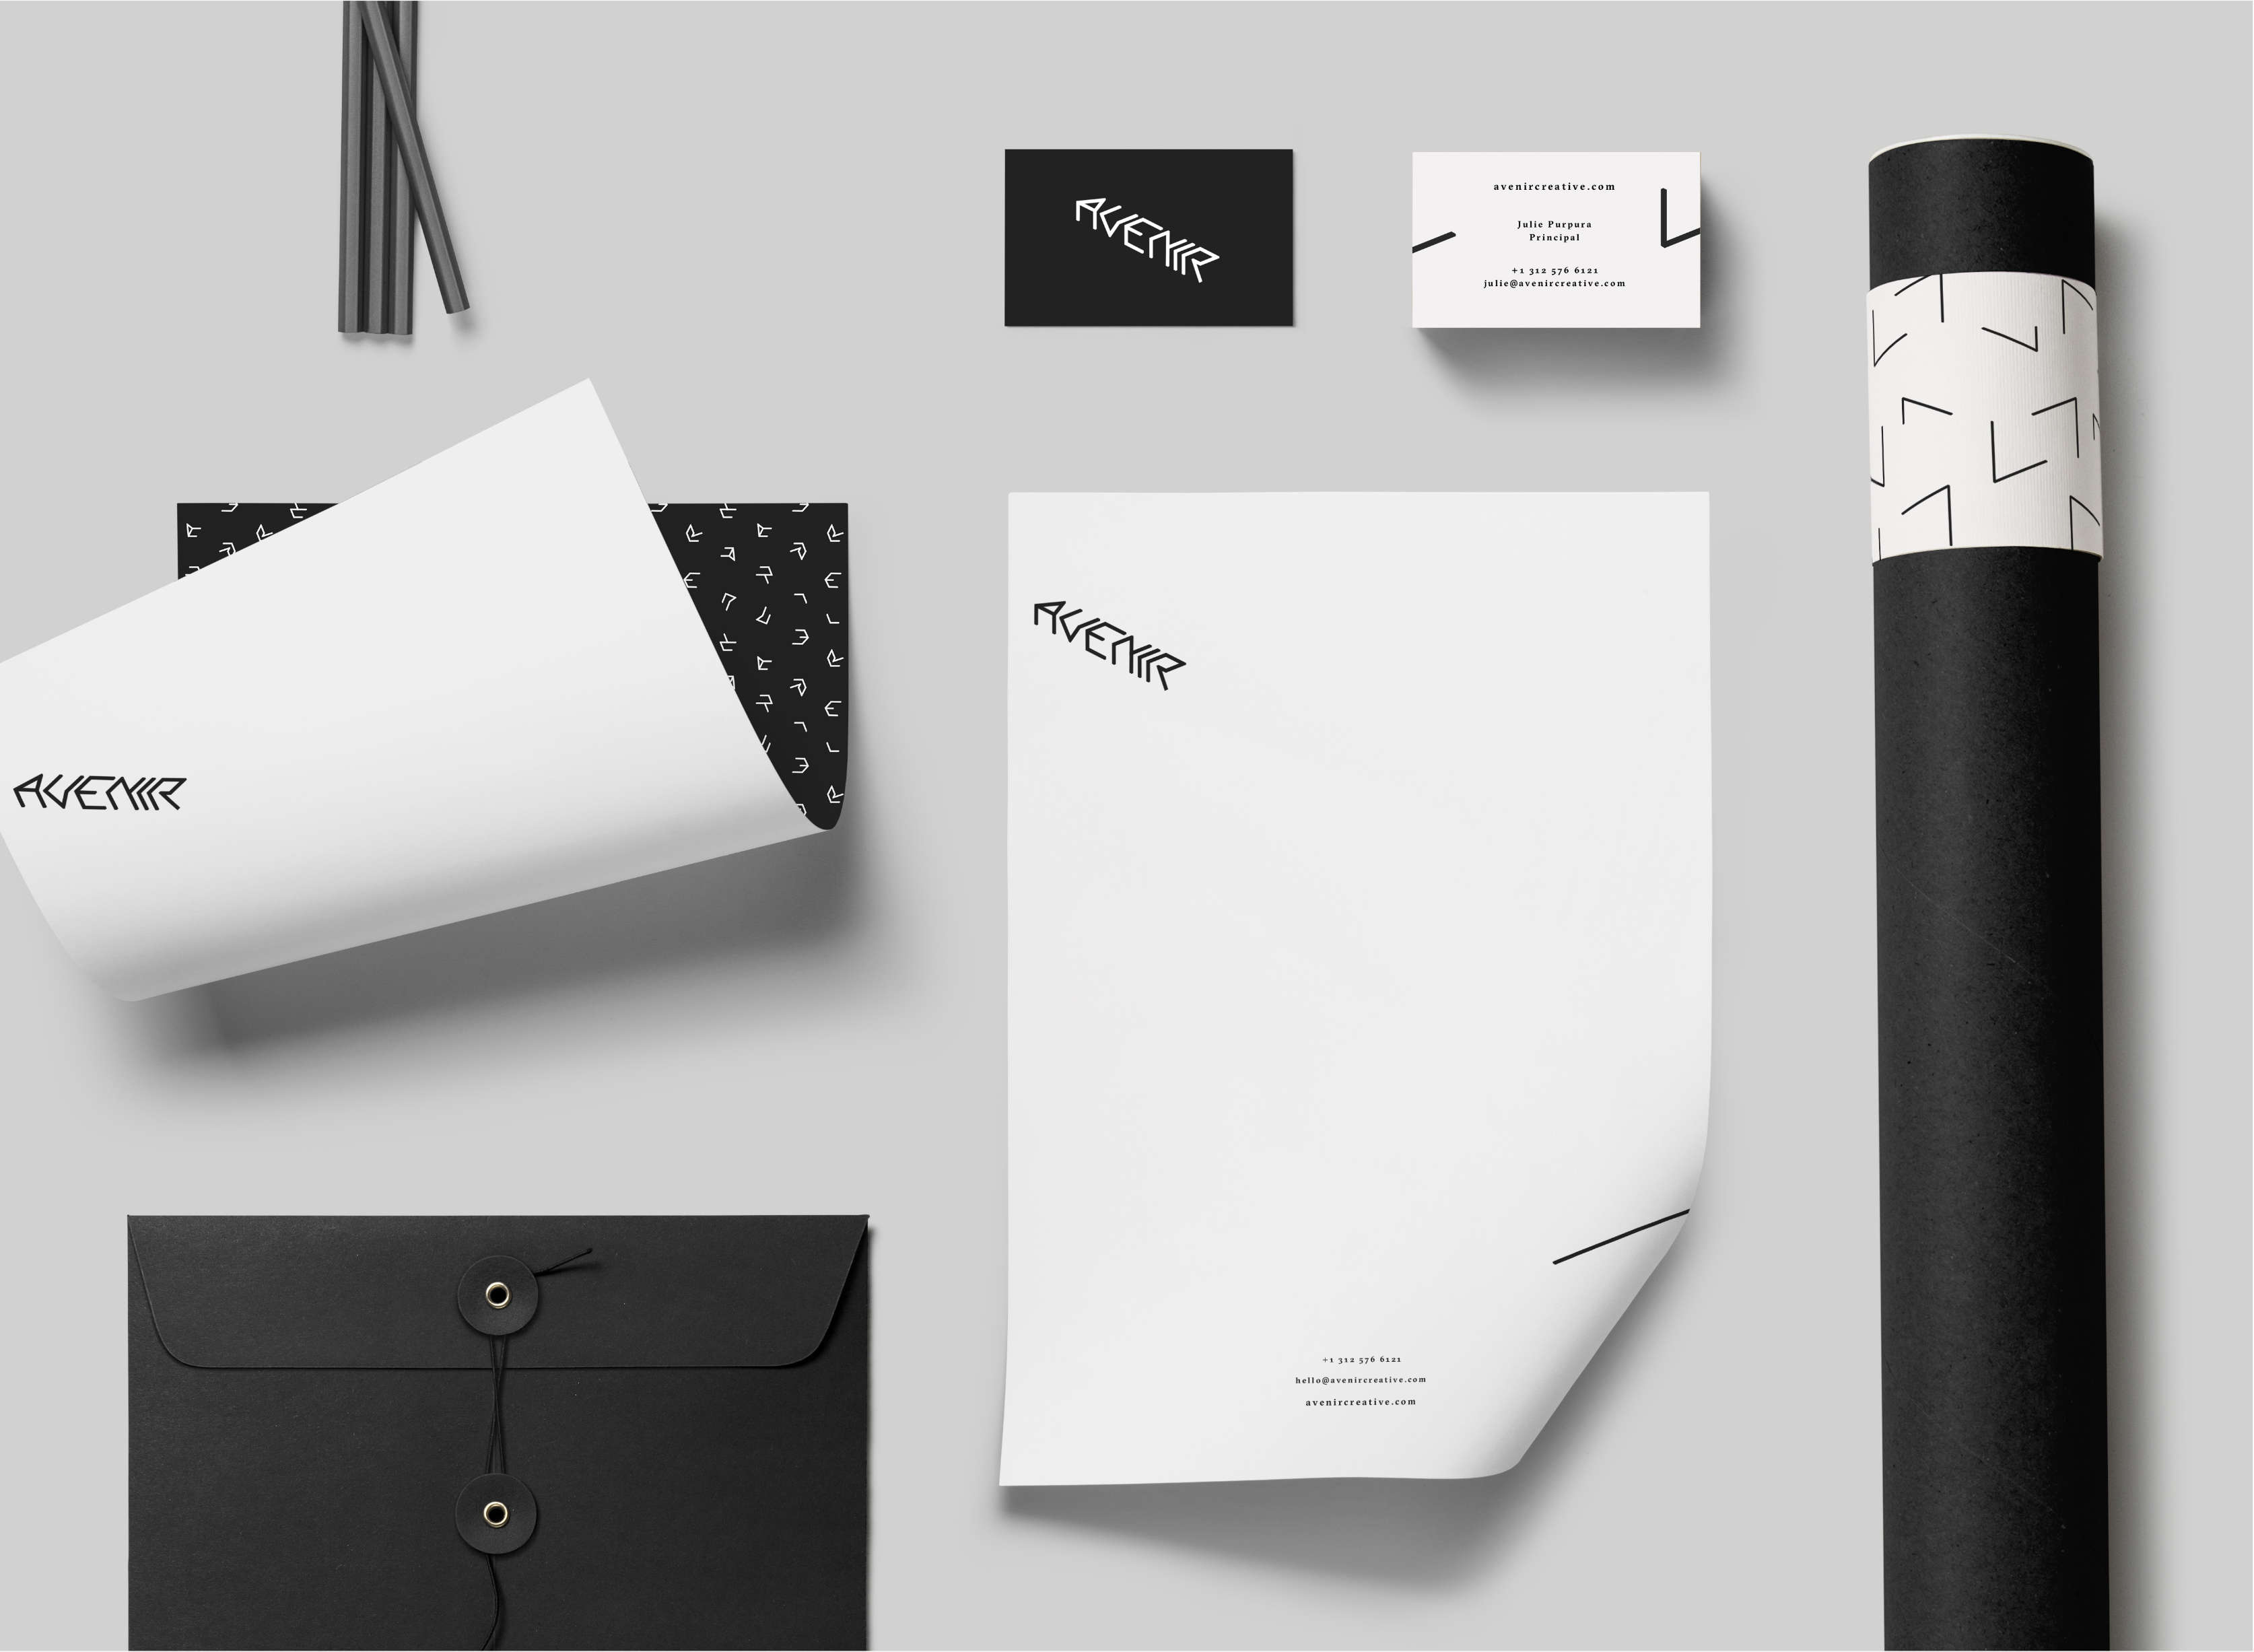 Spread of Avenir identity and branding collateral, including company stationery.